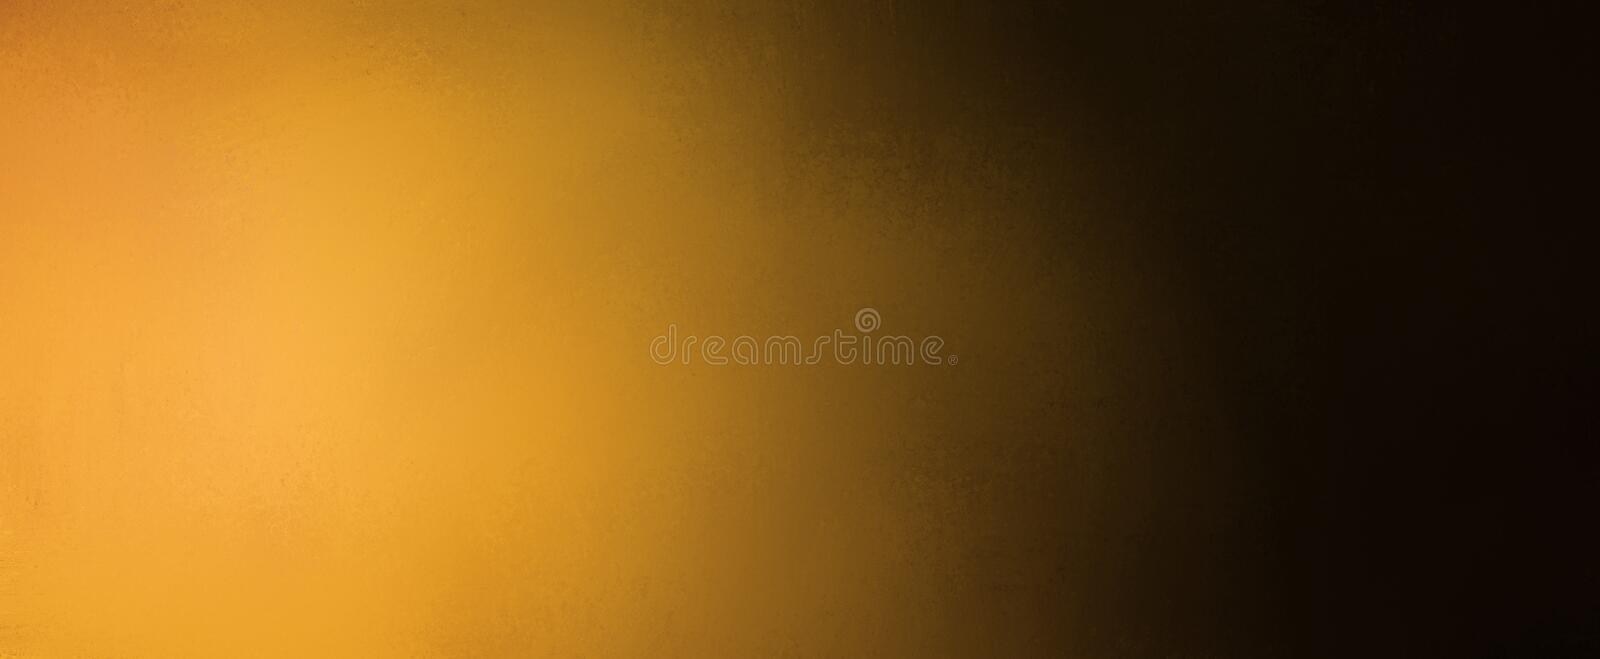 Abstract background with gradient gold and black colors with blurred texture, elegant dark and light background stock illustration